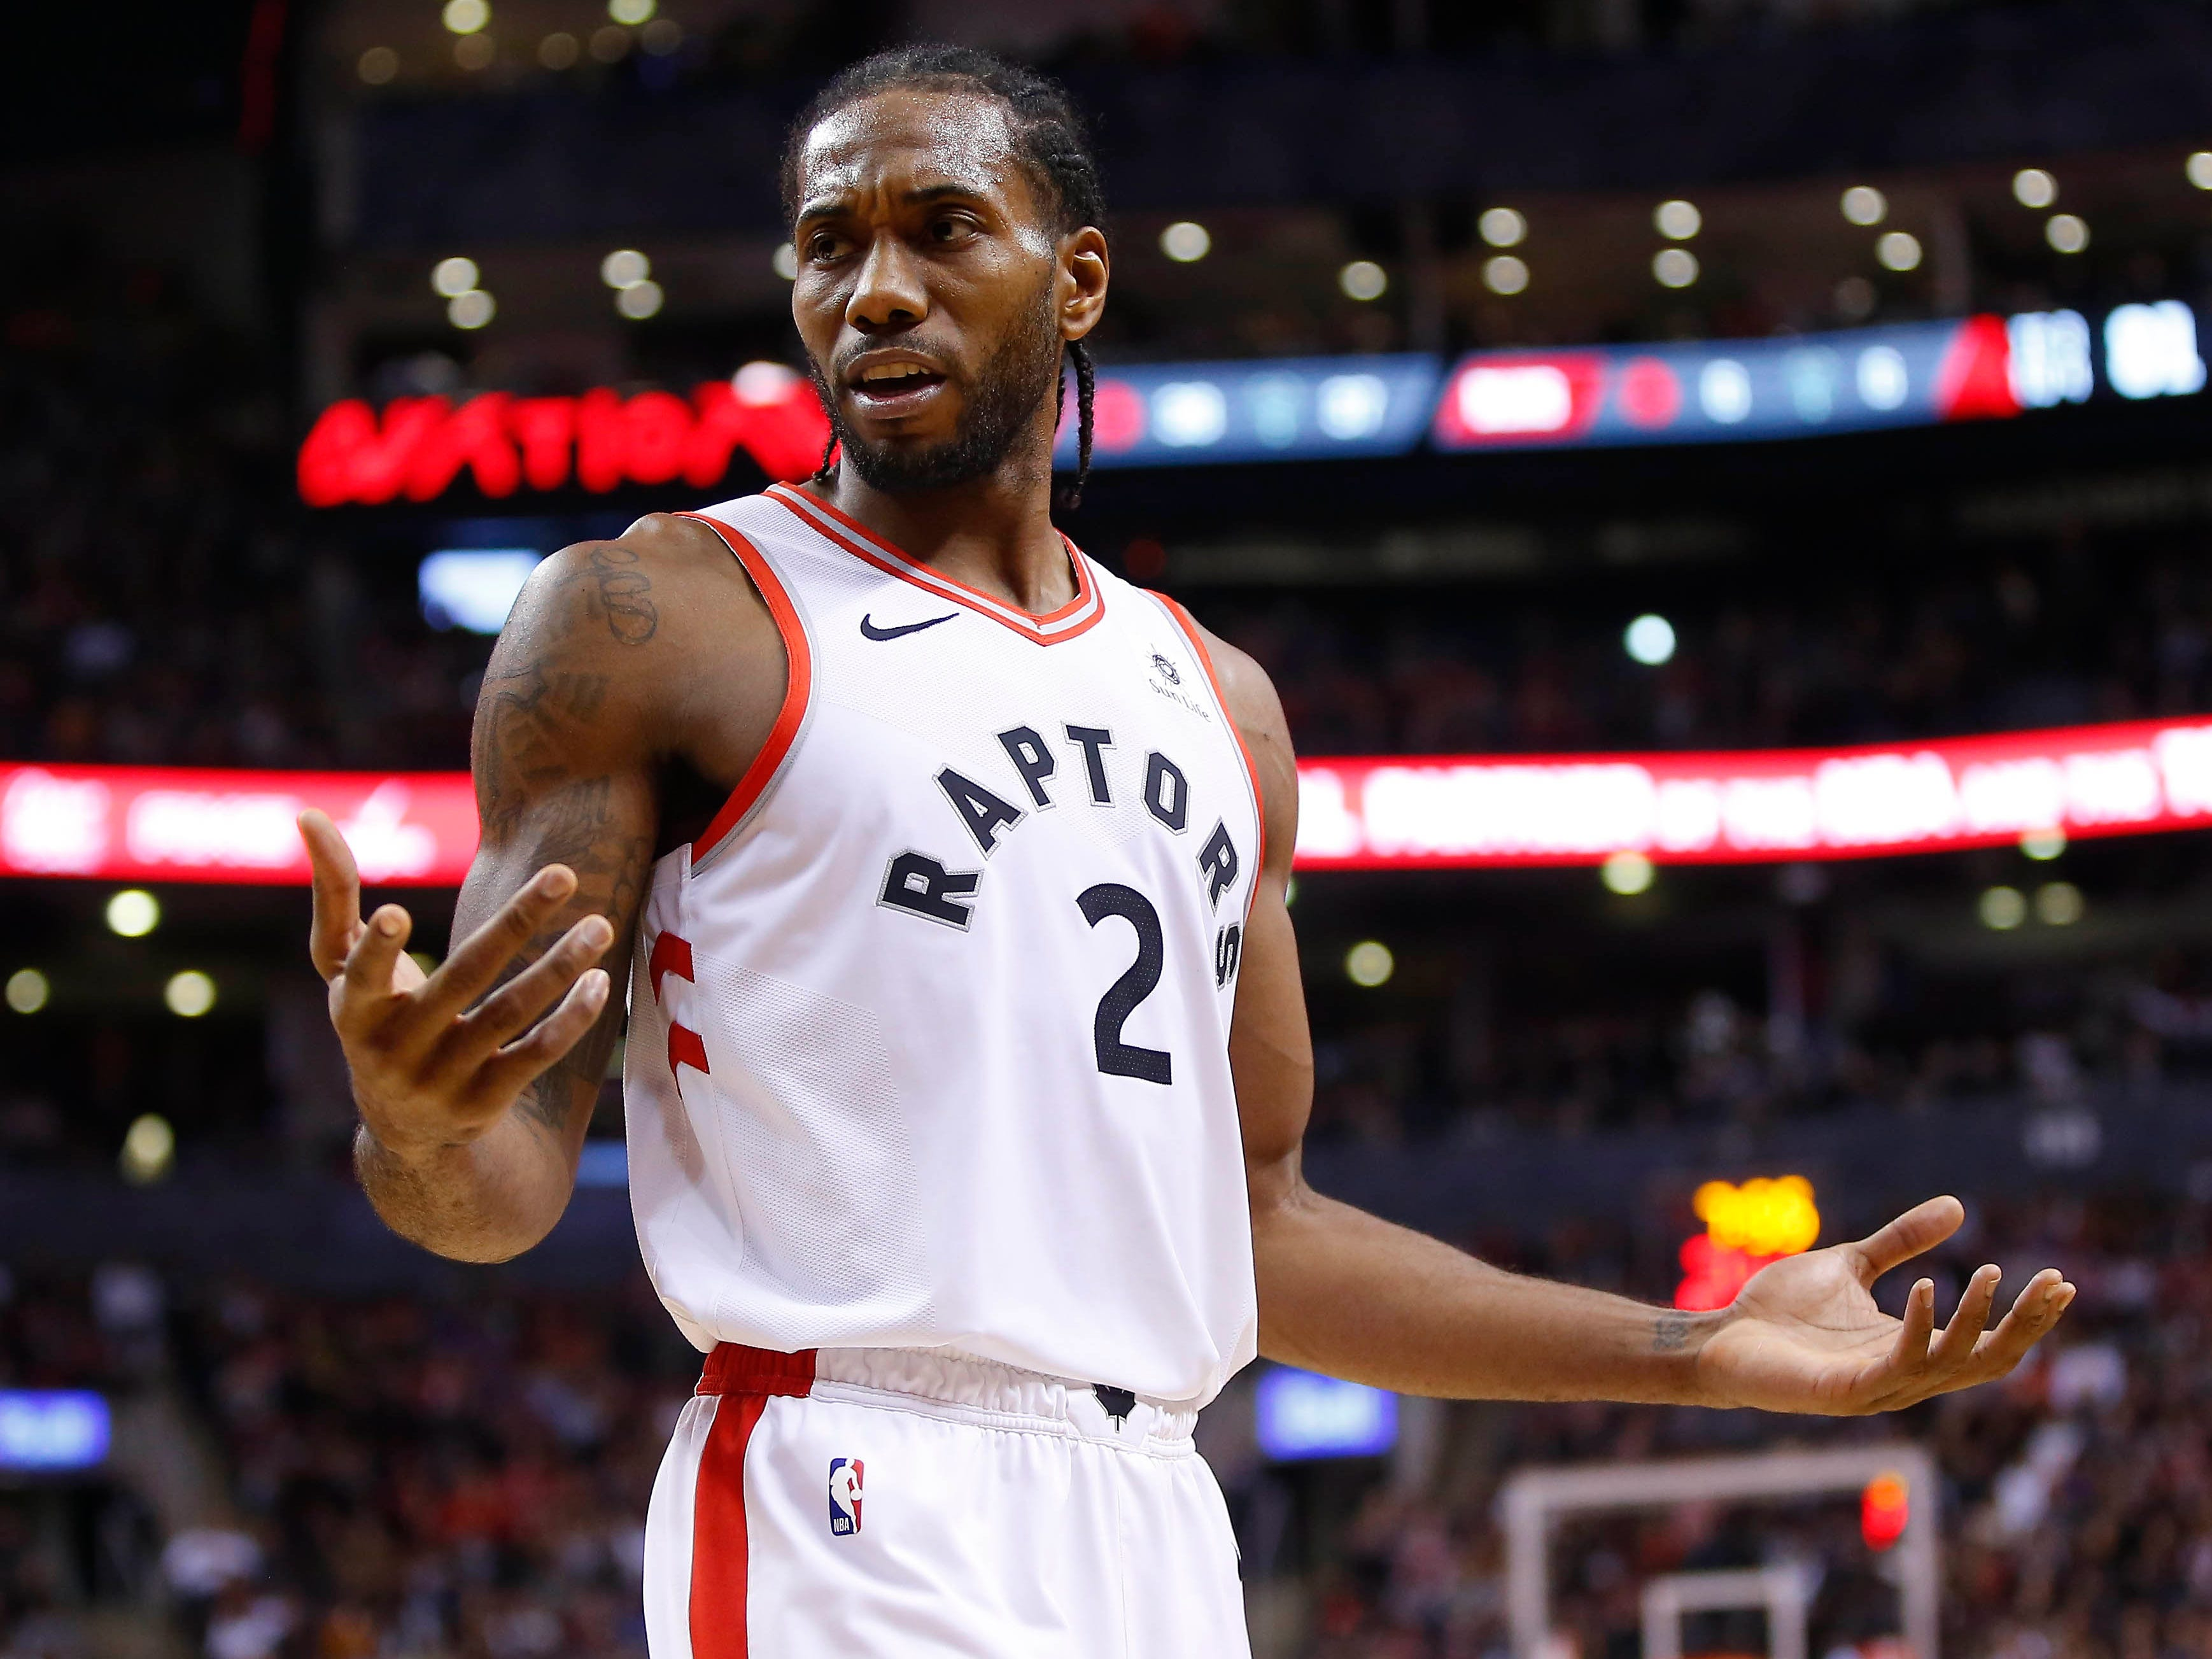 Dec. 9: Raptors forward Kawhi Leonard  can't believe the call during the second half against the Bucks in Toronto.